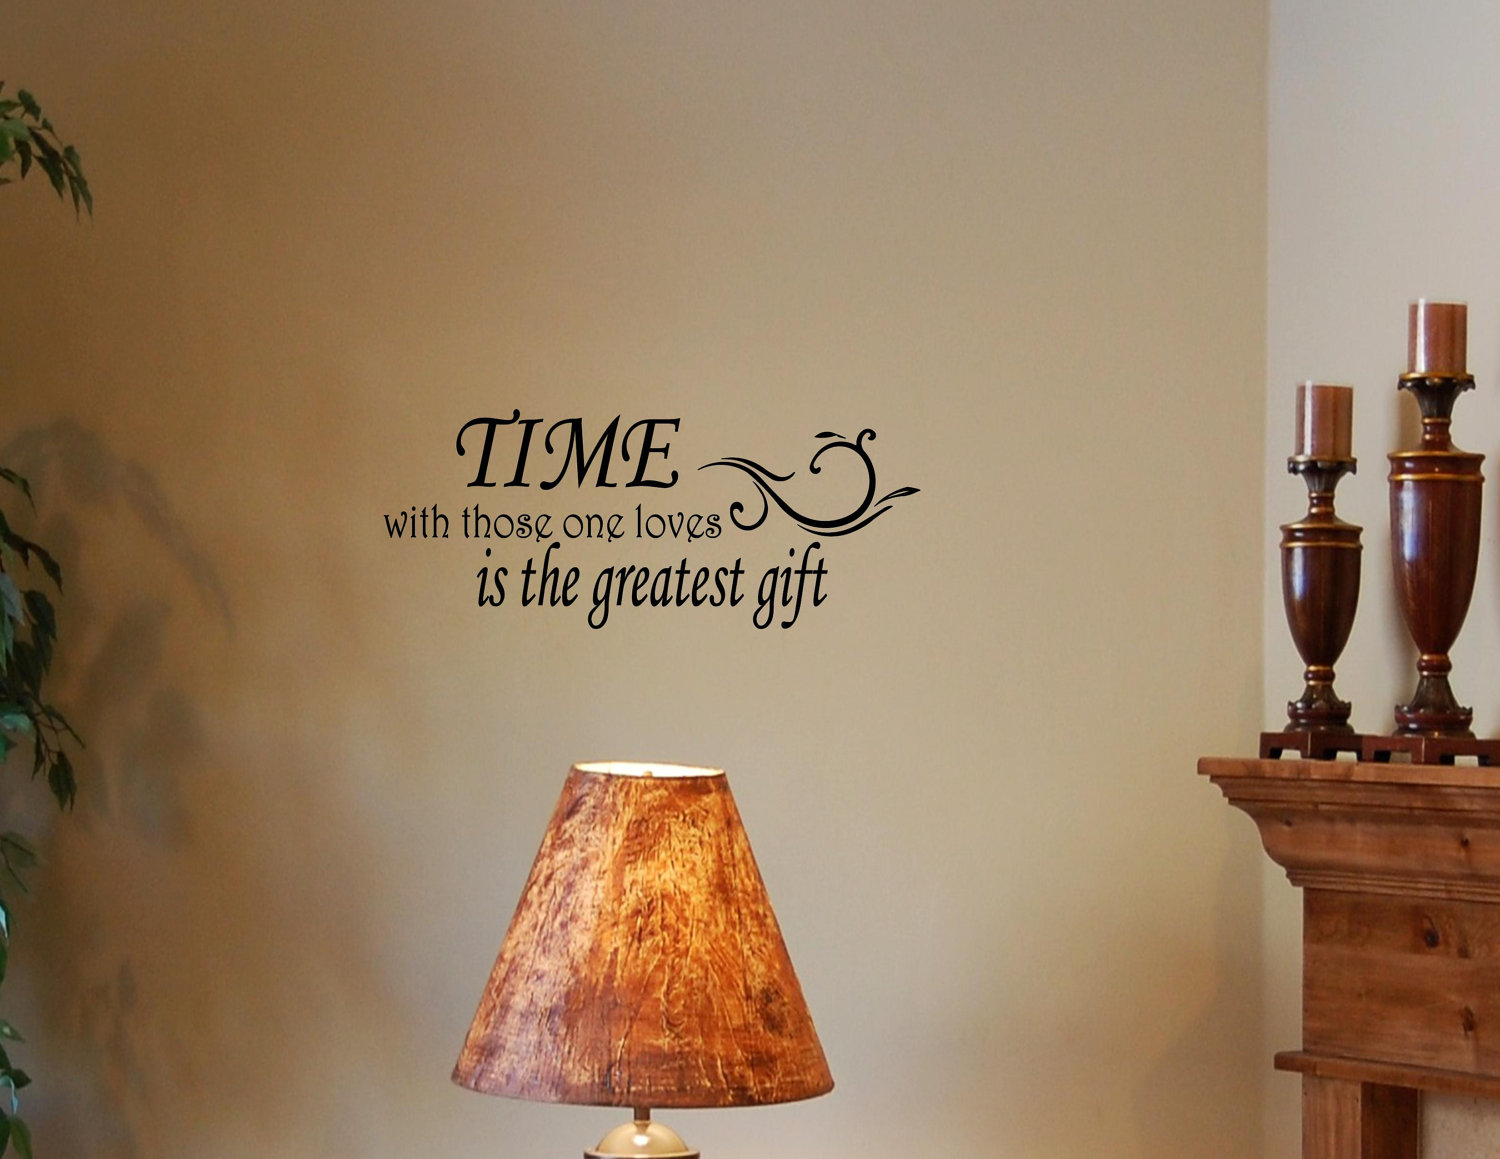 gift of time quotes quotesgram